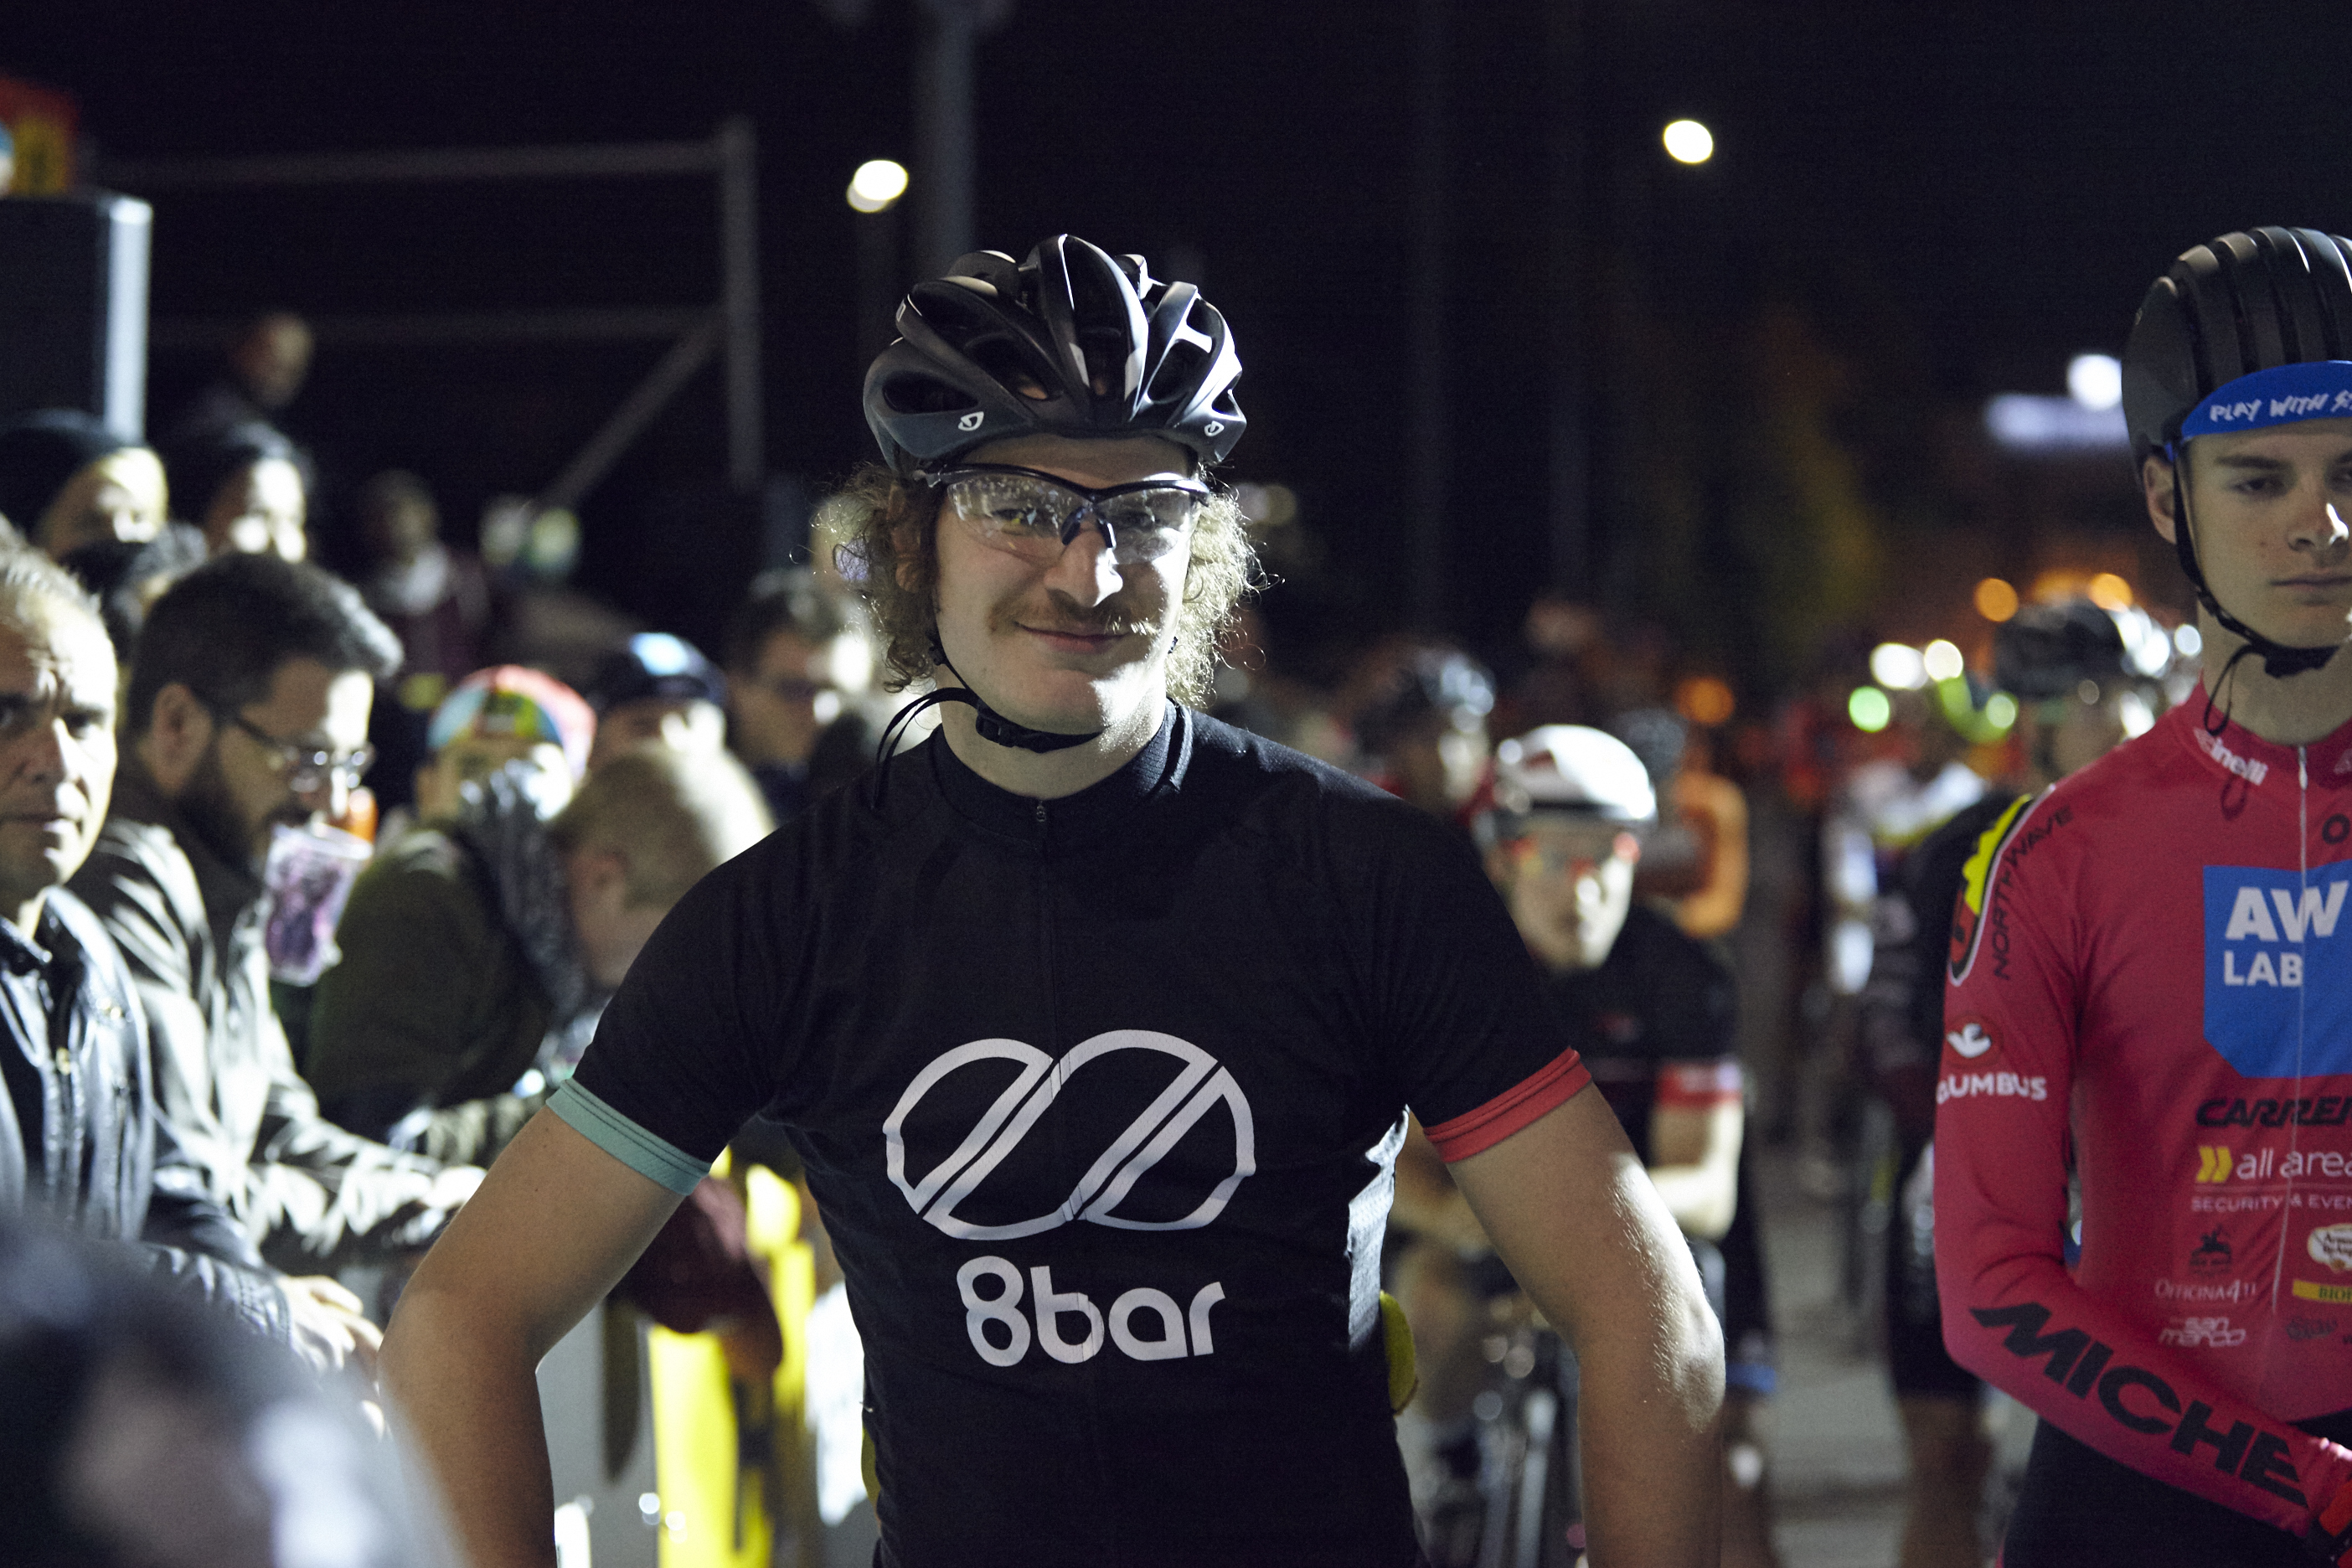 8bar rookies red hook crit milan 8672 - 8bar at Red Hook Criterium Milan 2015